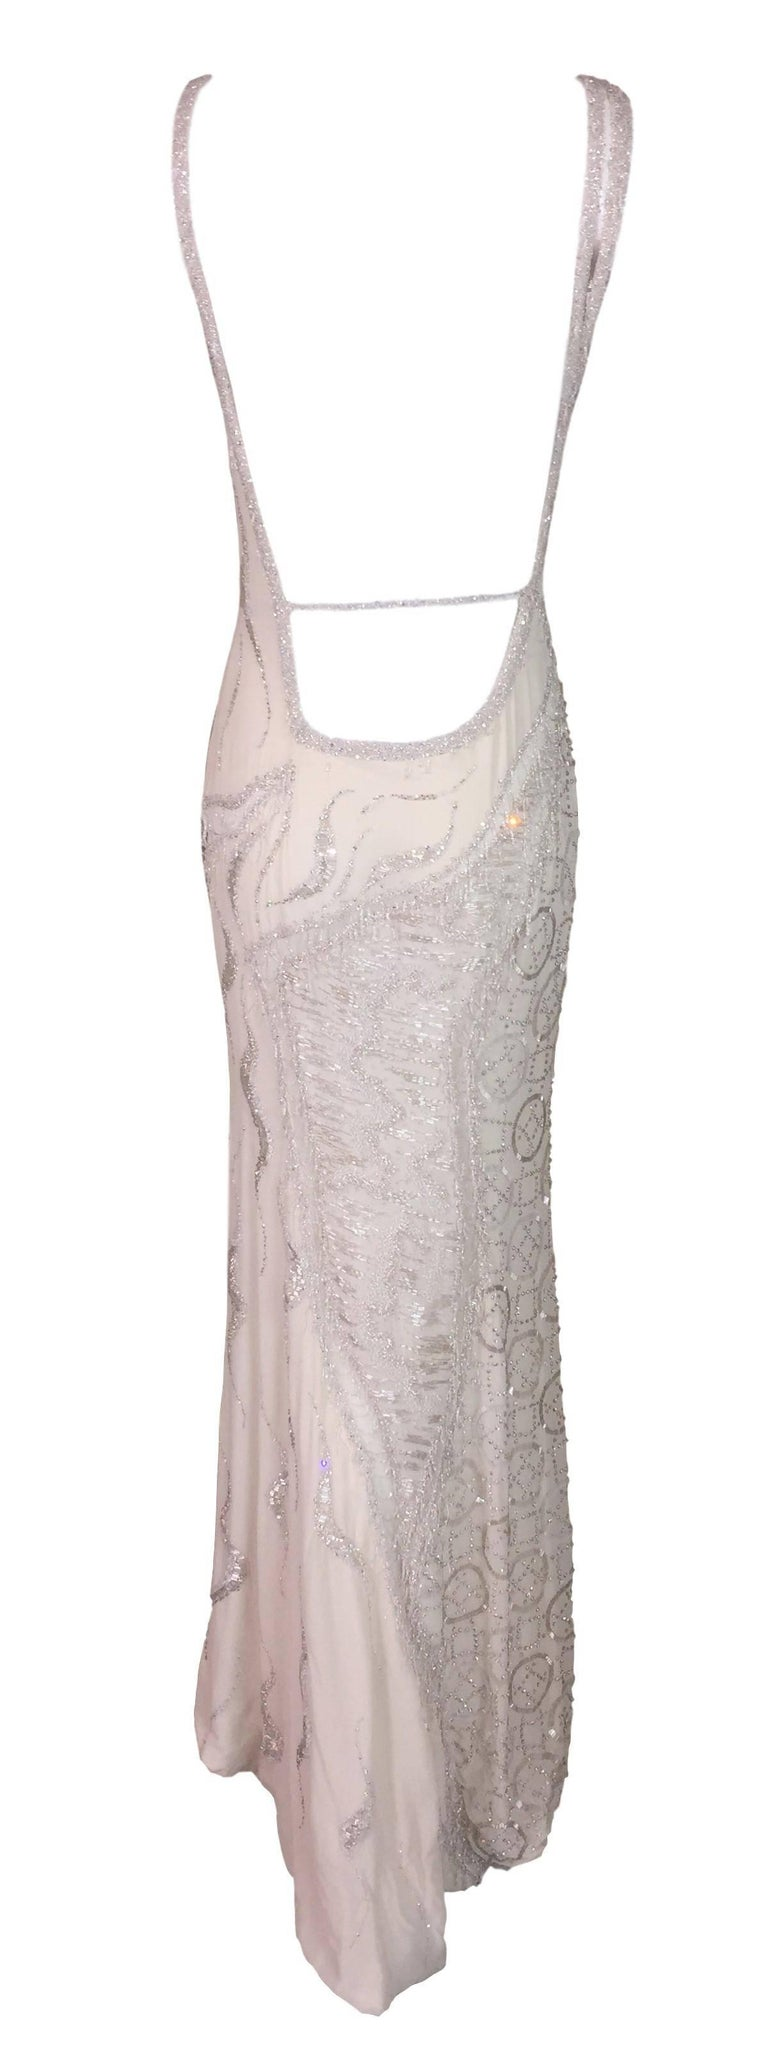 Atelier Versace Runway Sheer Ivory Bridal Wedding Beaded Gown Dress, F / W 1998  For Sale 1